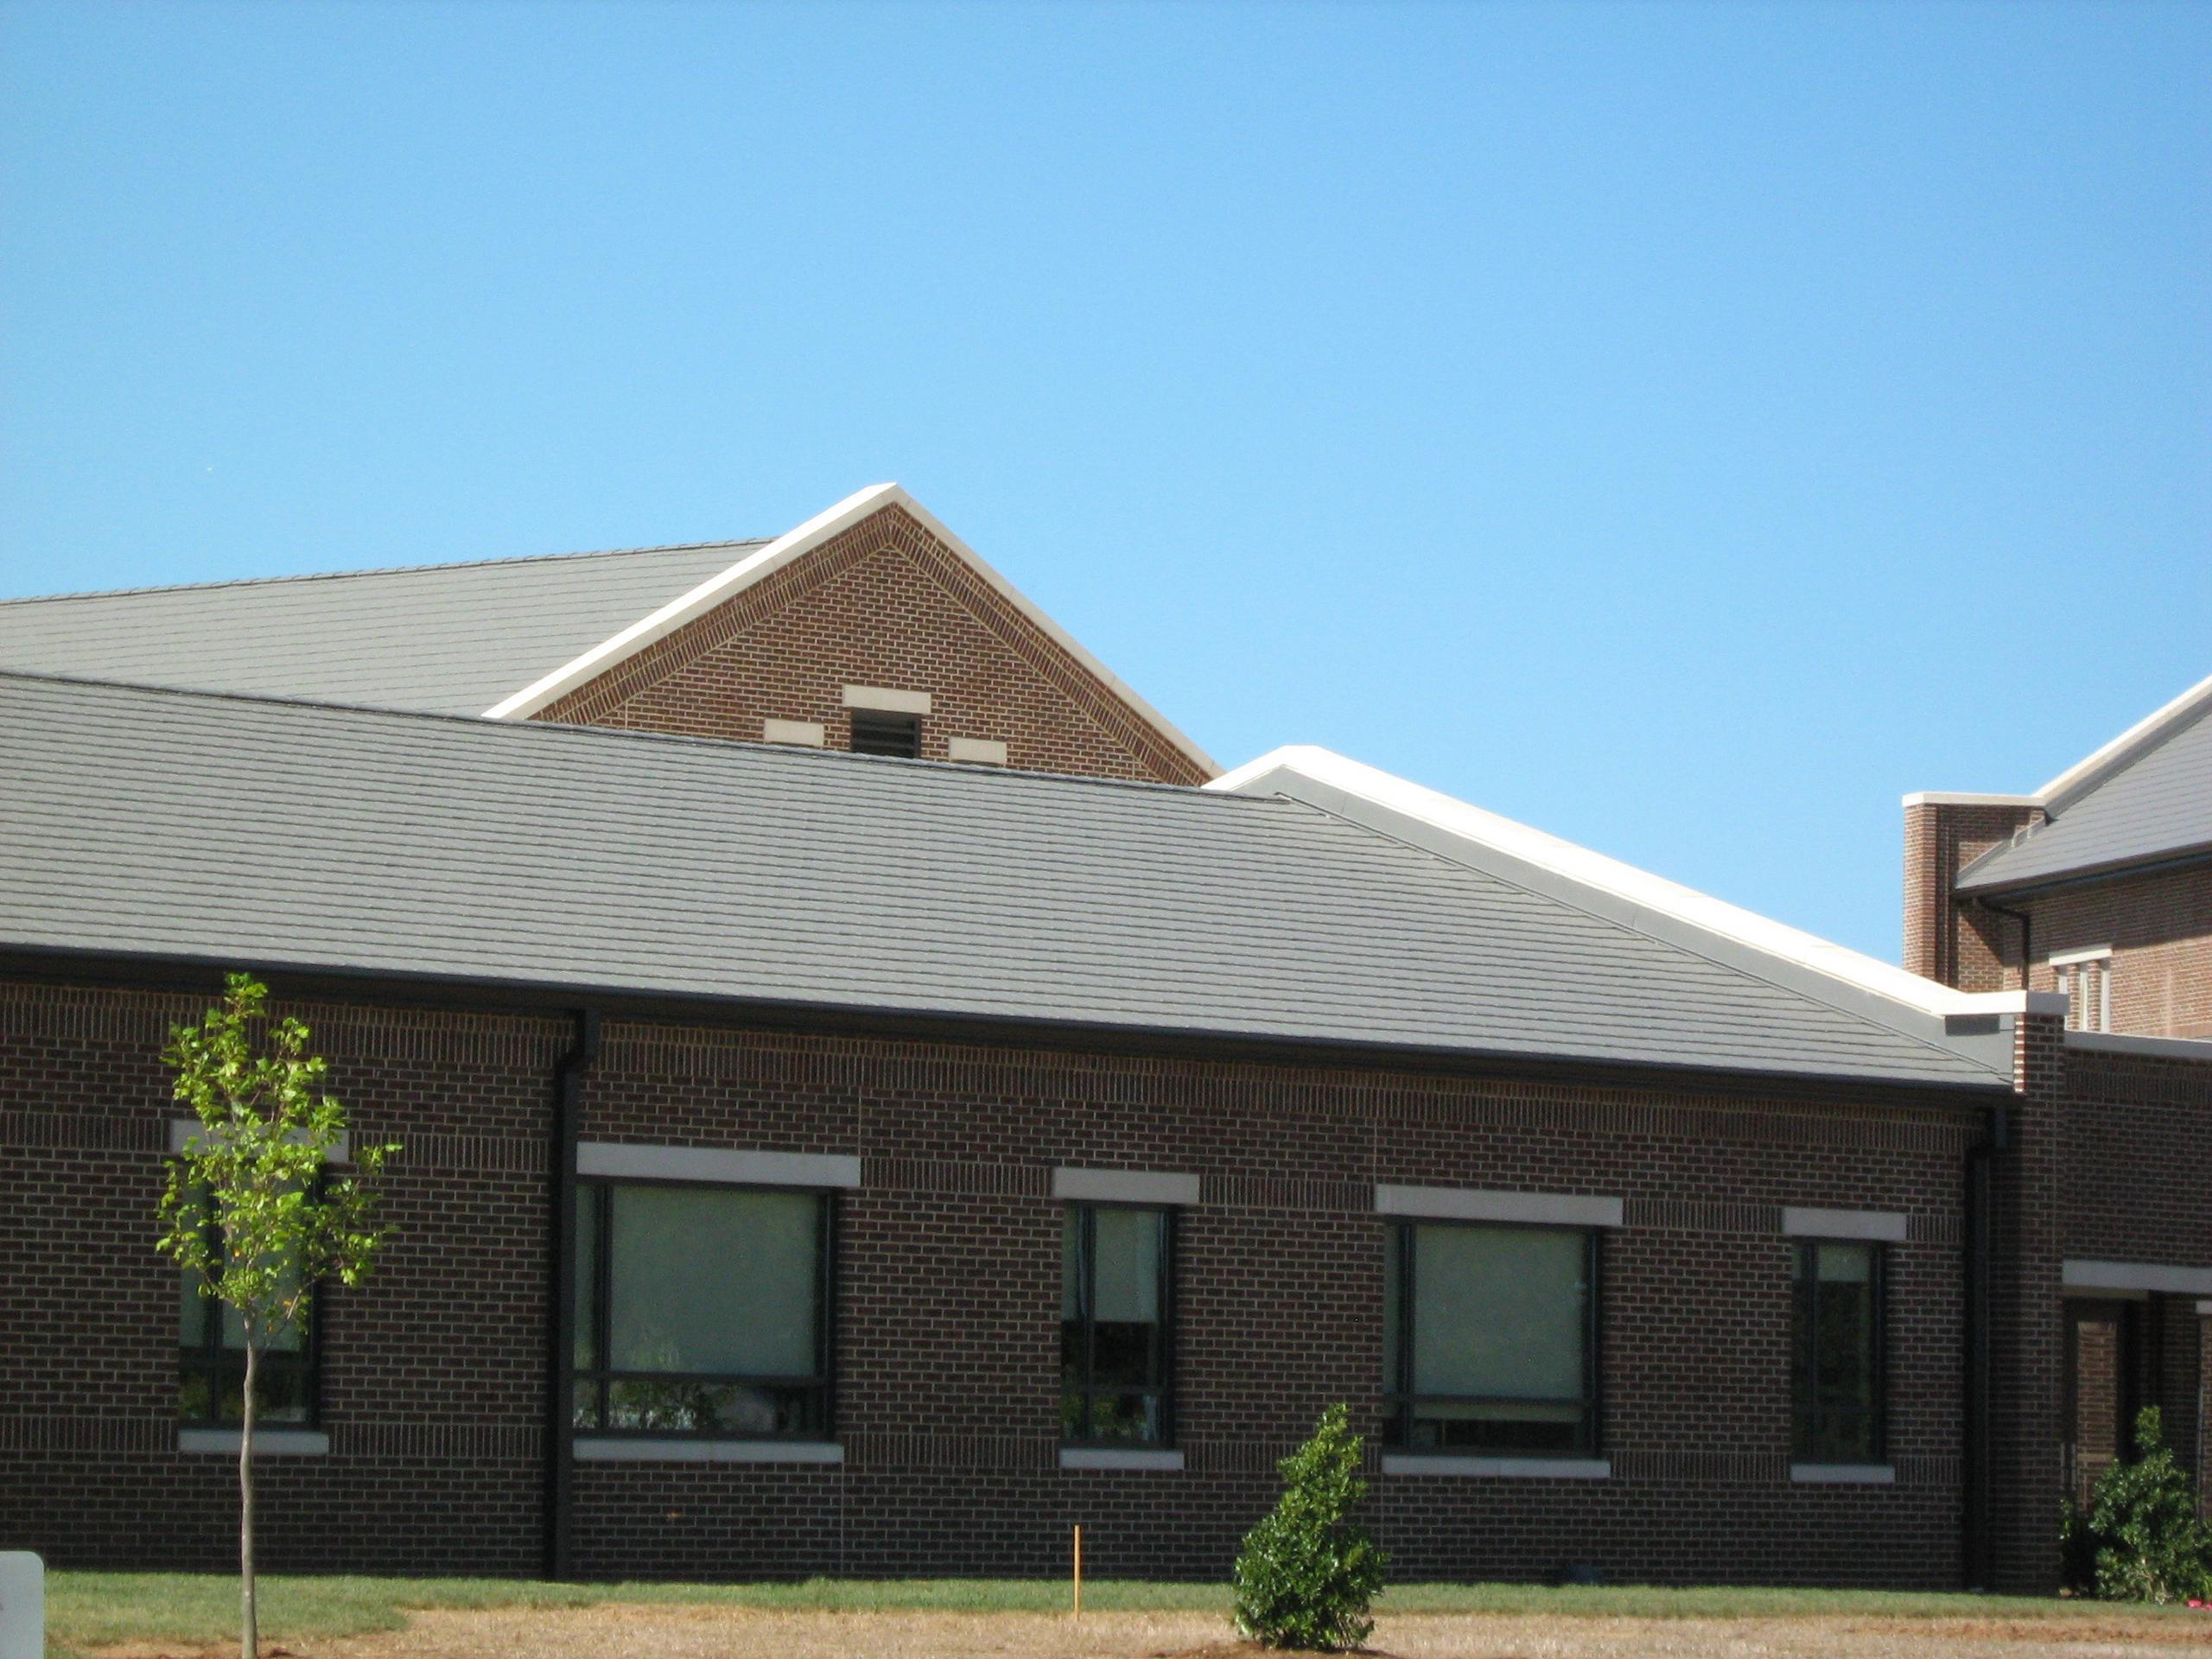 An education building attached to a church selected Arrowline Shake Charcoal Gray Roofing from EDCO to cooridnate with the stunning beauty of the church architecture.